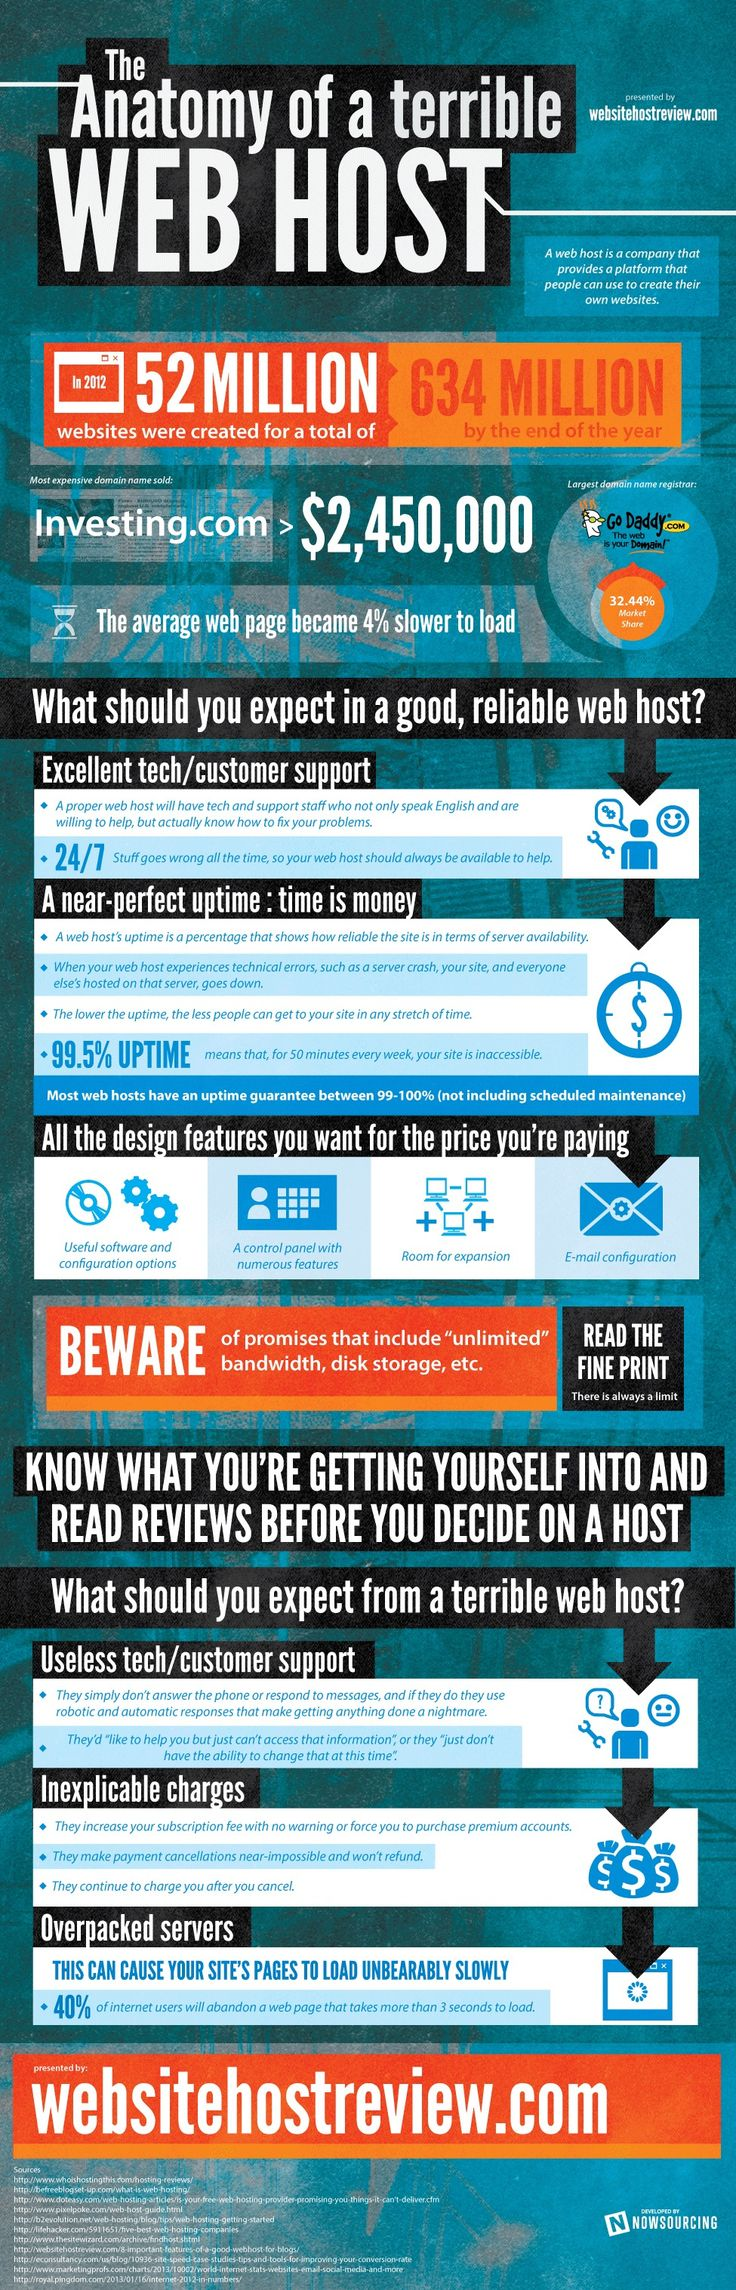 1000+ images about Web Hosting Infographic on Pinterest ...